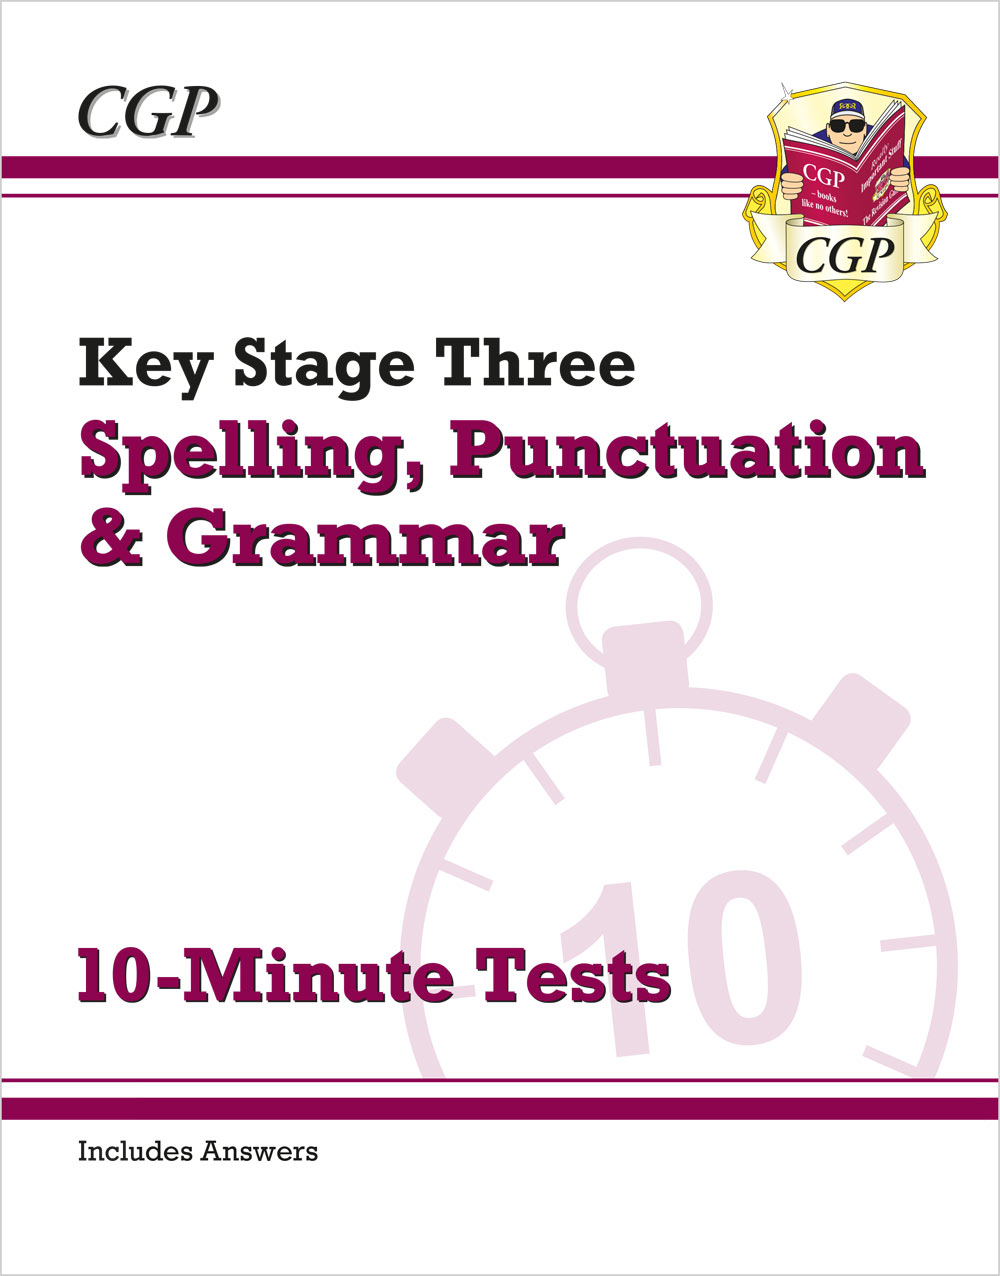 EGXP31 - KS3 Spelling, Punctuation and Grammar 10-Minute Tests (includes answers)